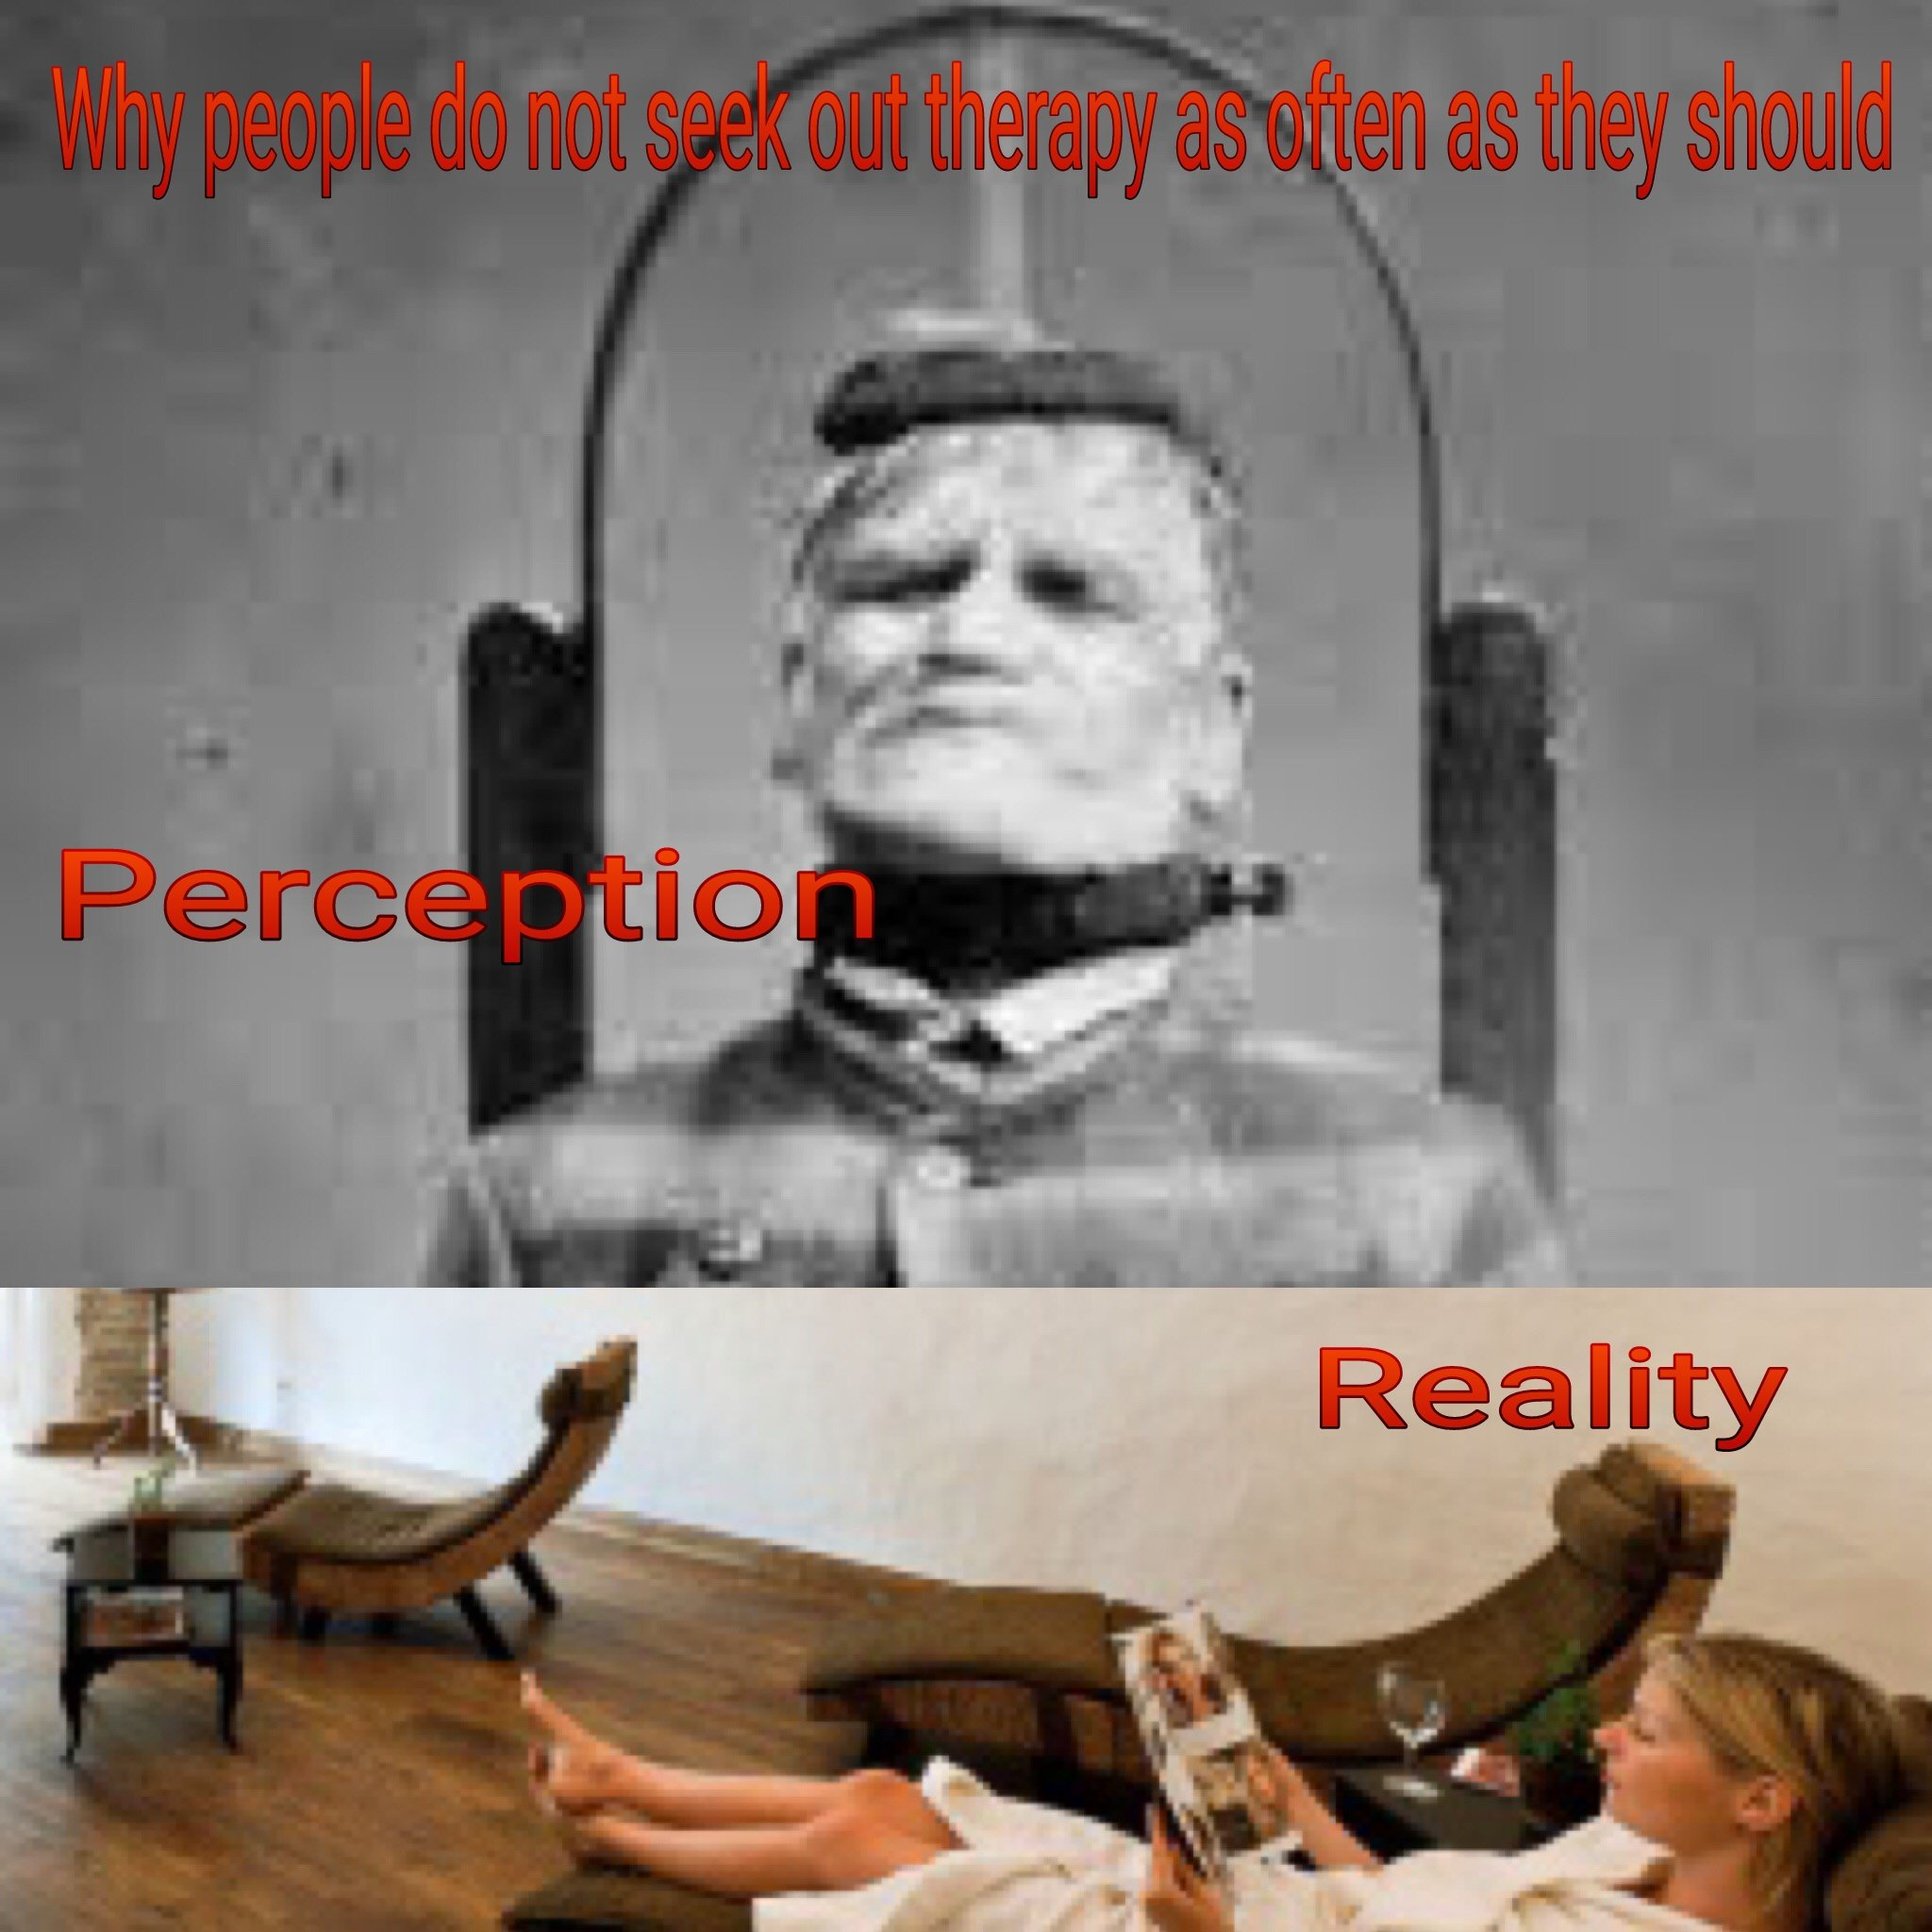 perception reality poster for mental health